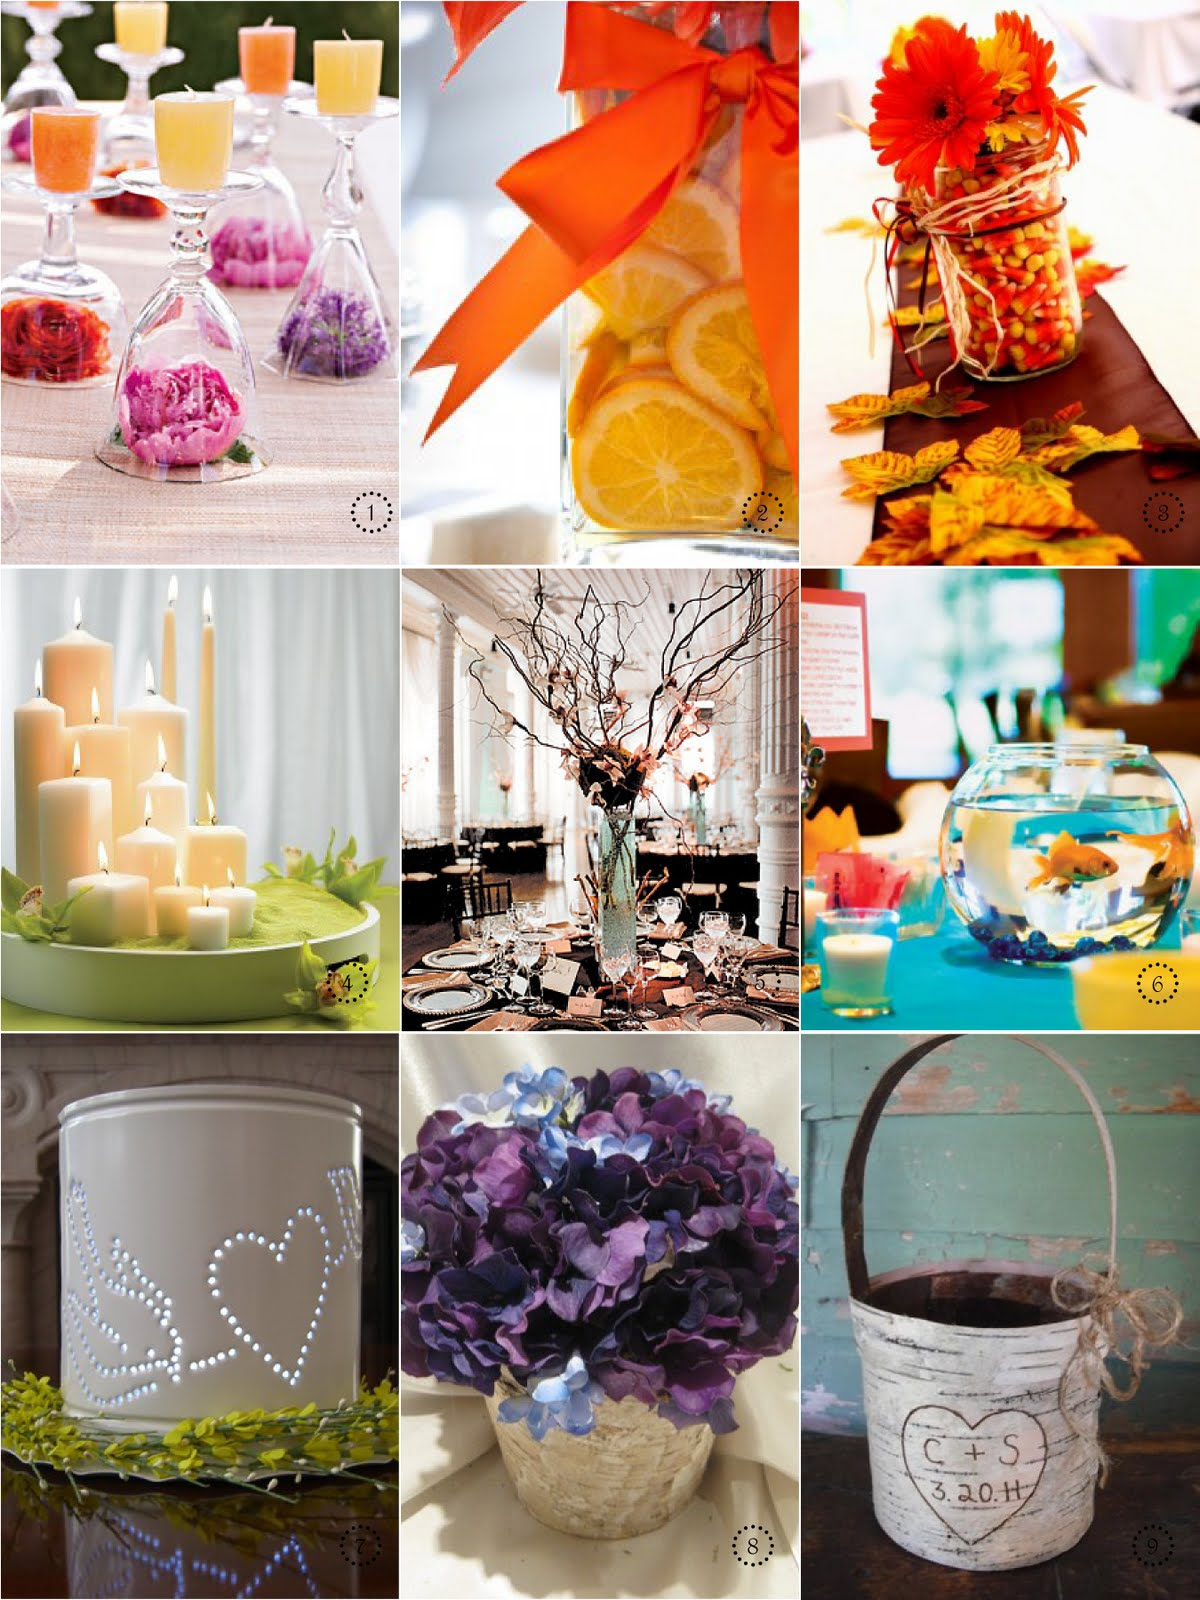 St Louis Honda >> Emanuela's blog: cheap wedding centerpieces